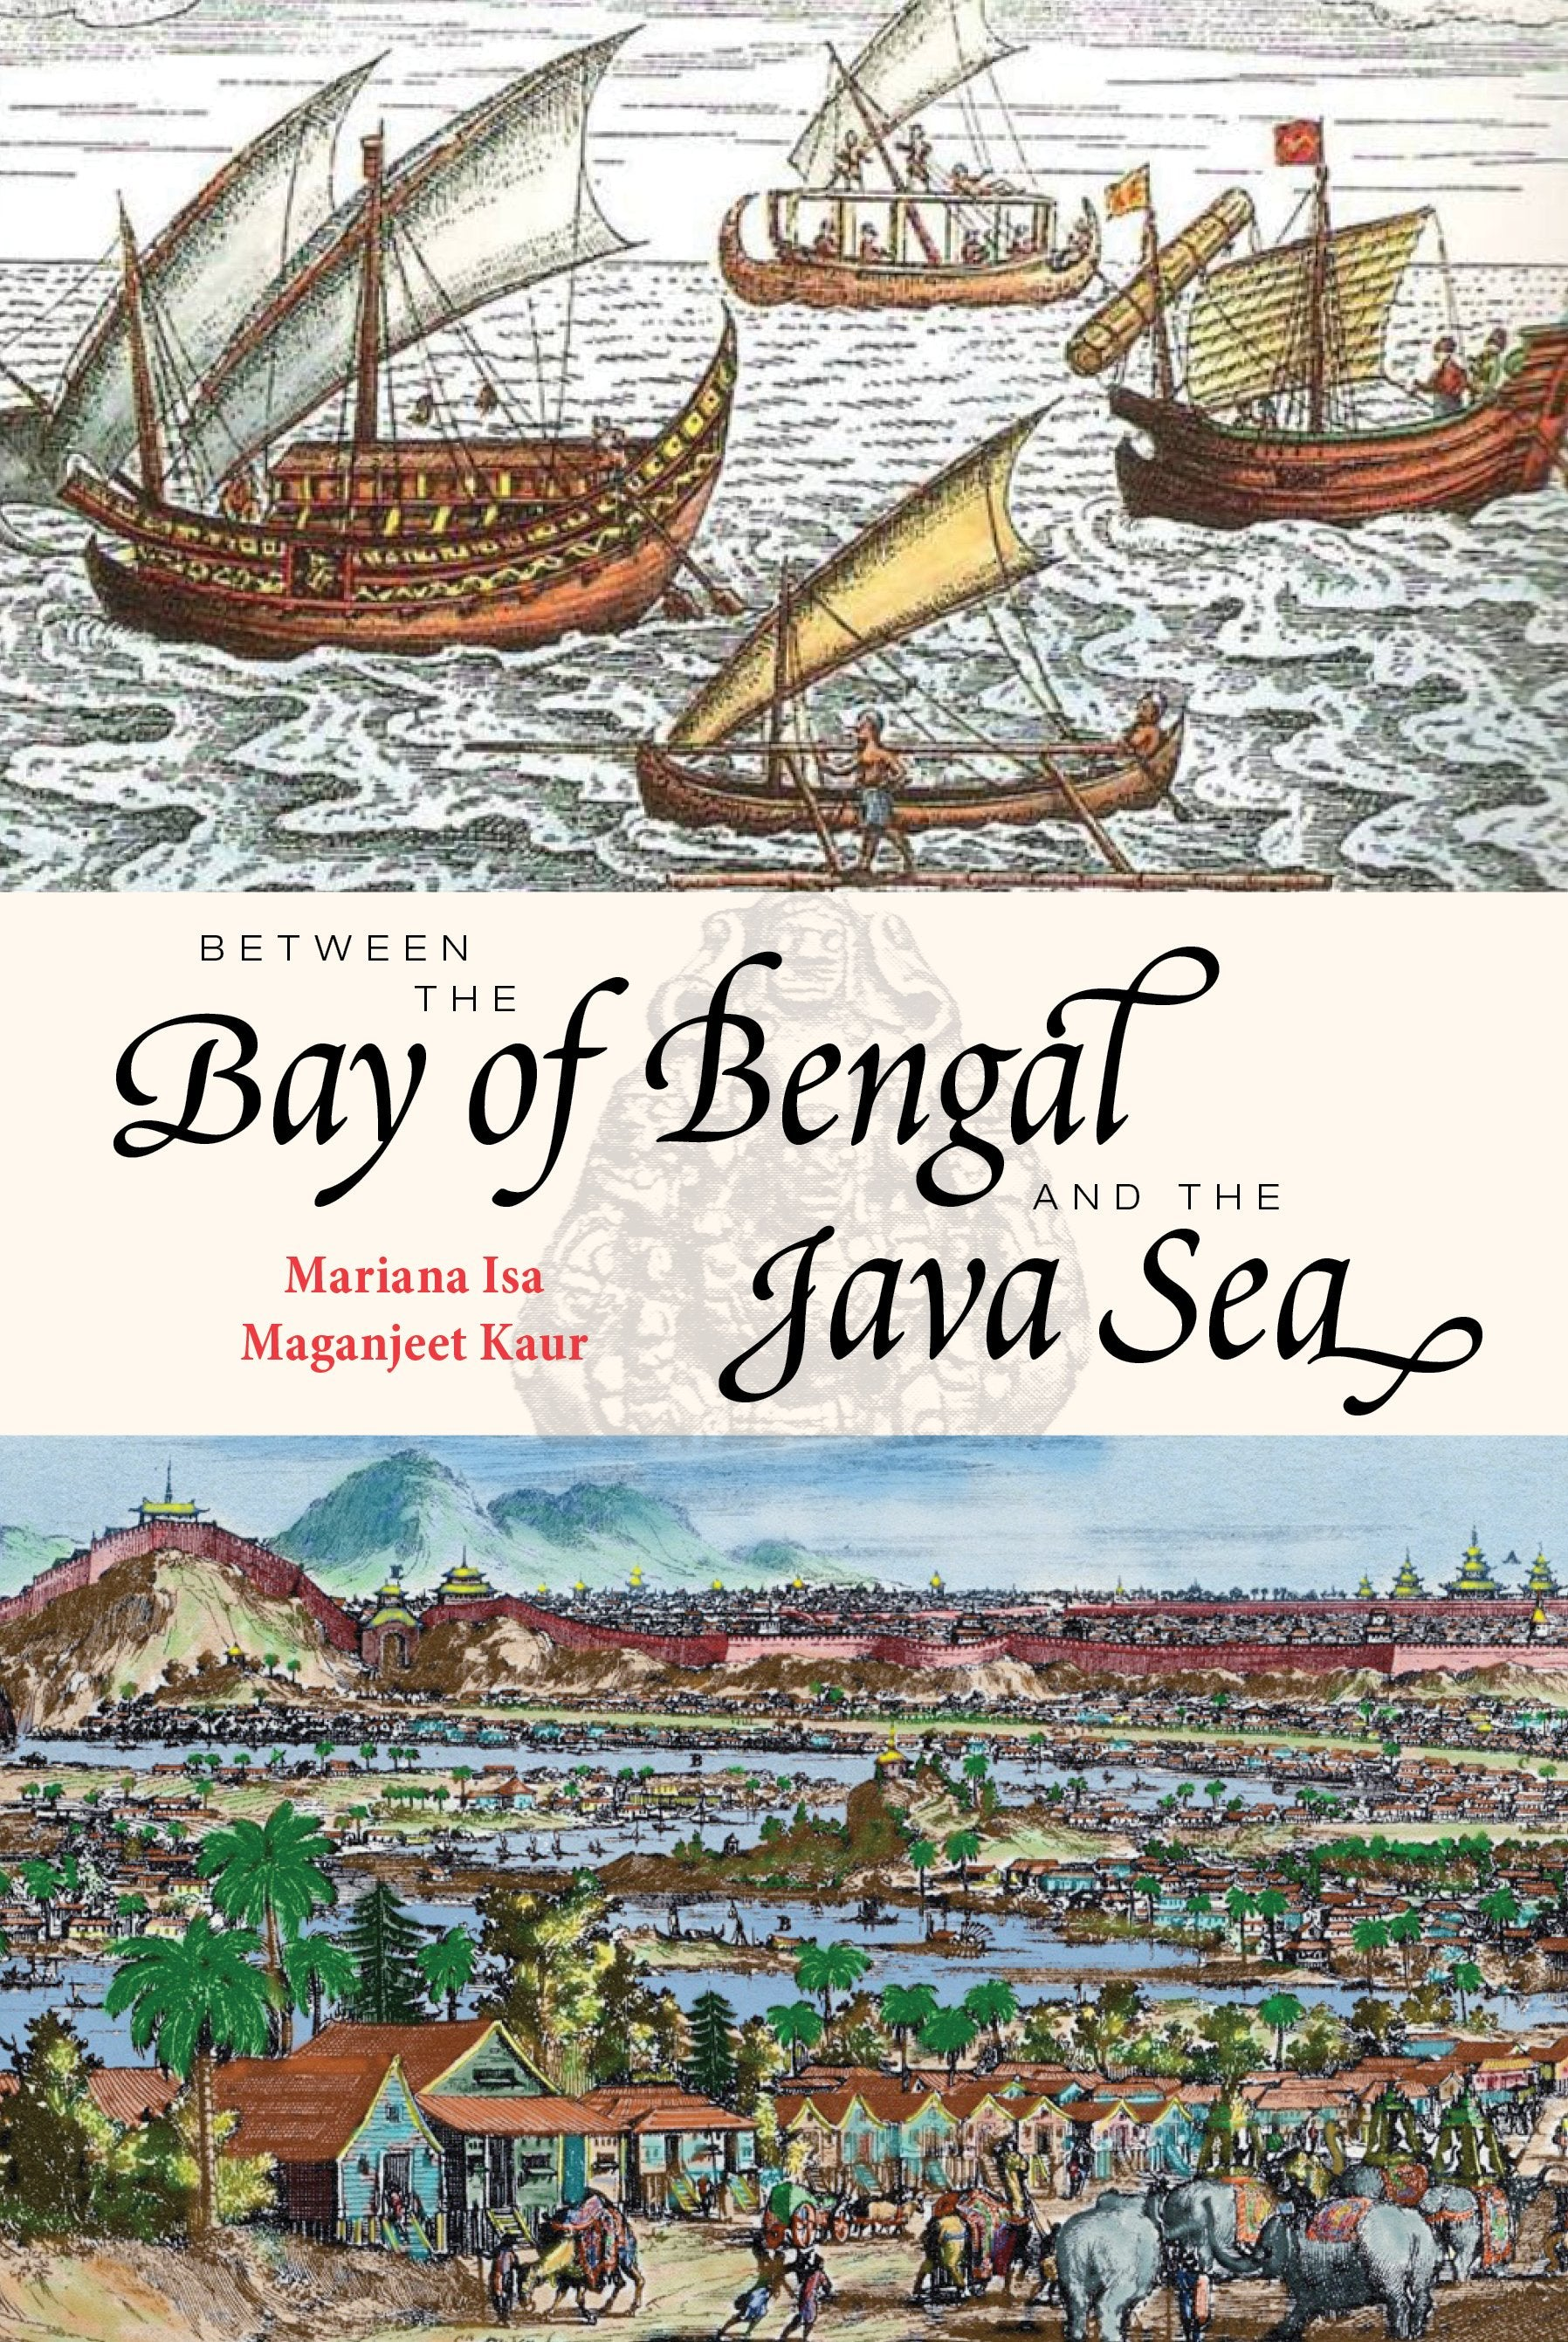 Between the Bay of Bengal and the Java Sea